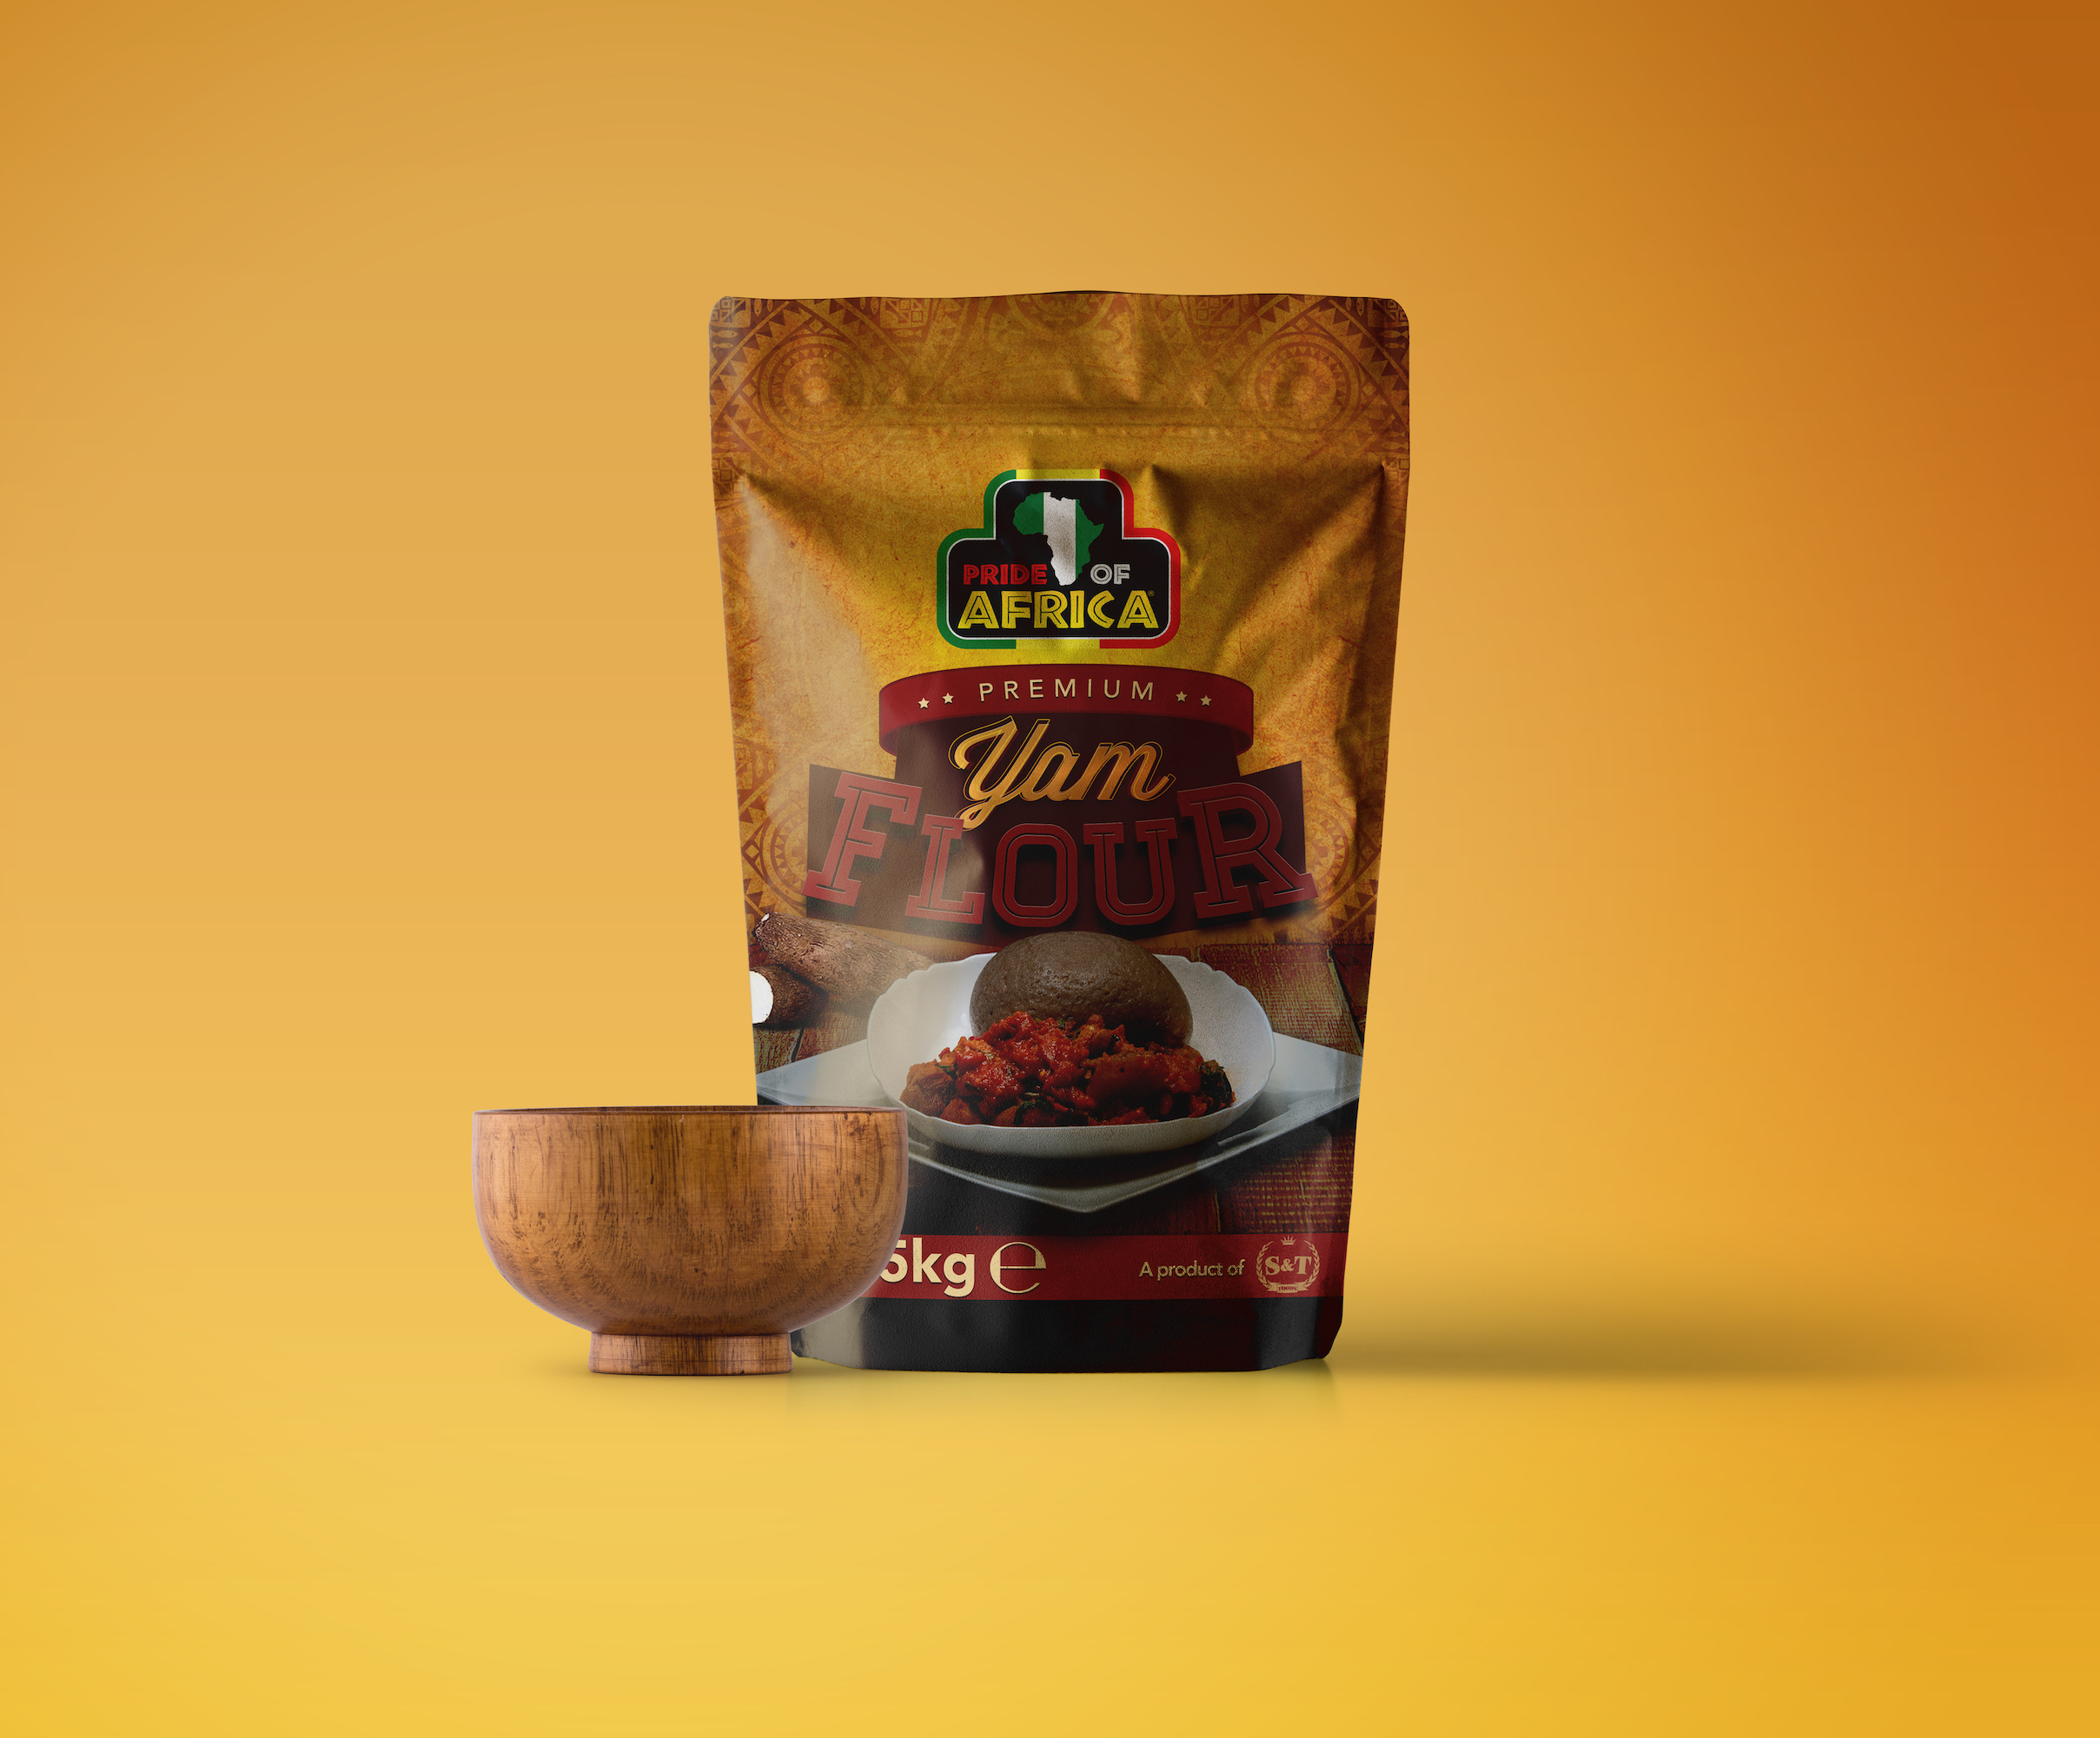 Packaging Design for Pride of Africa Foods, New Premium Food Range